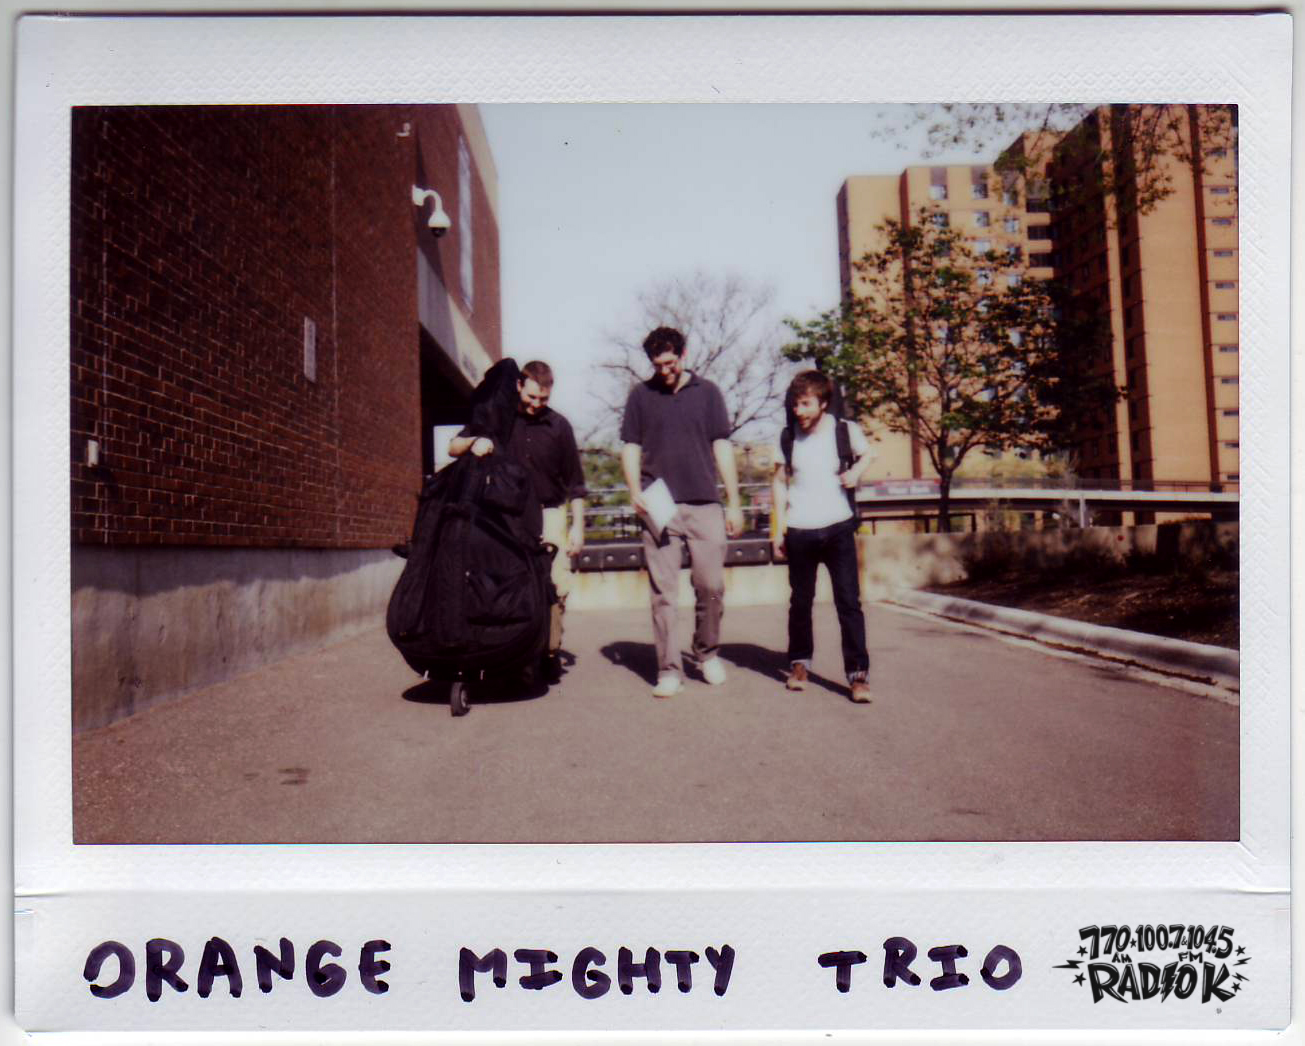 The Orange Mighty Trio - The Orange Mighty Trio